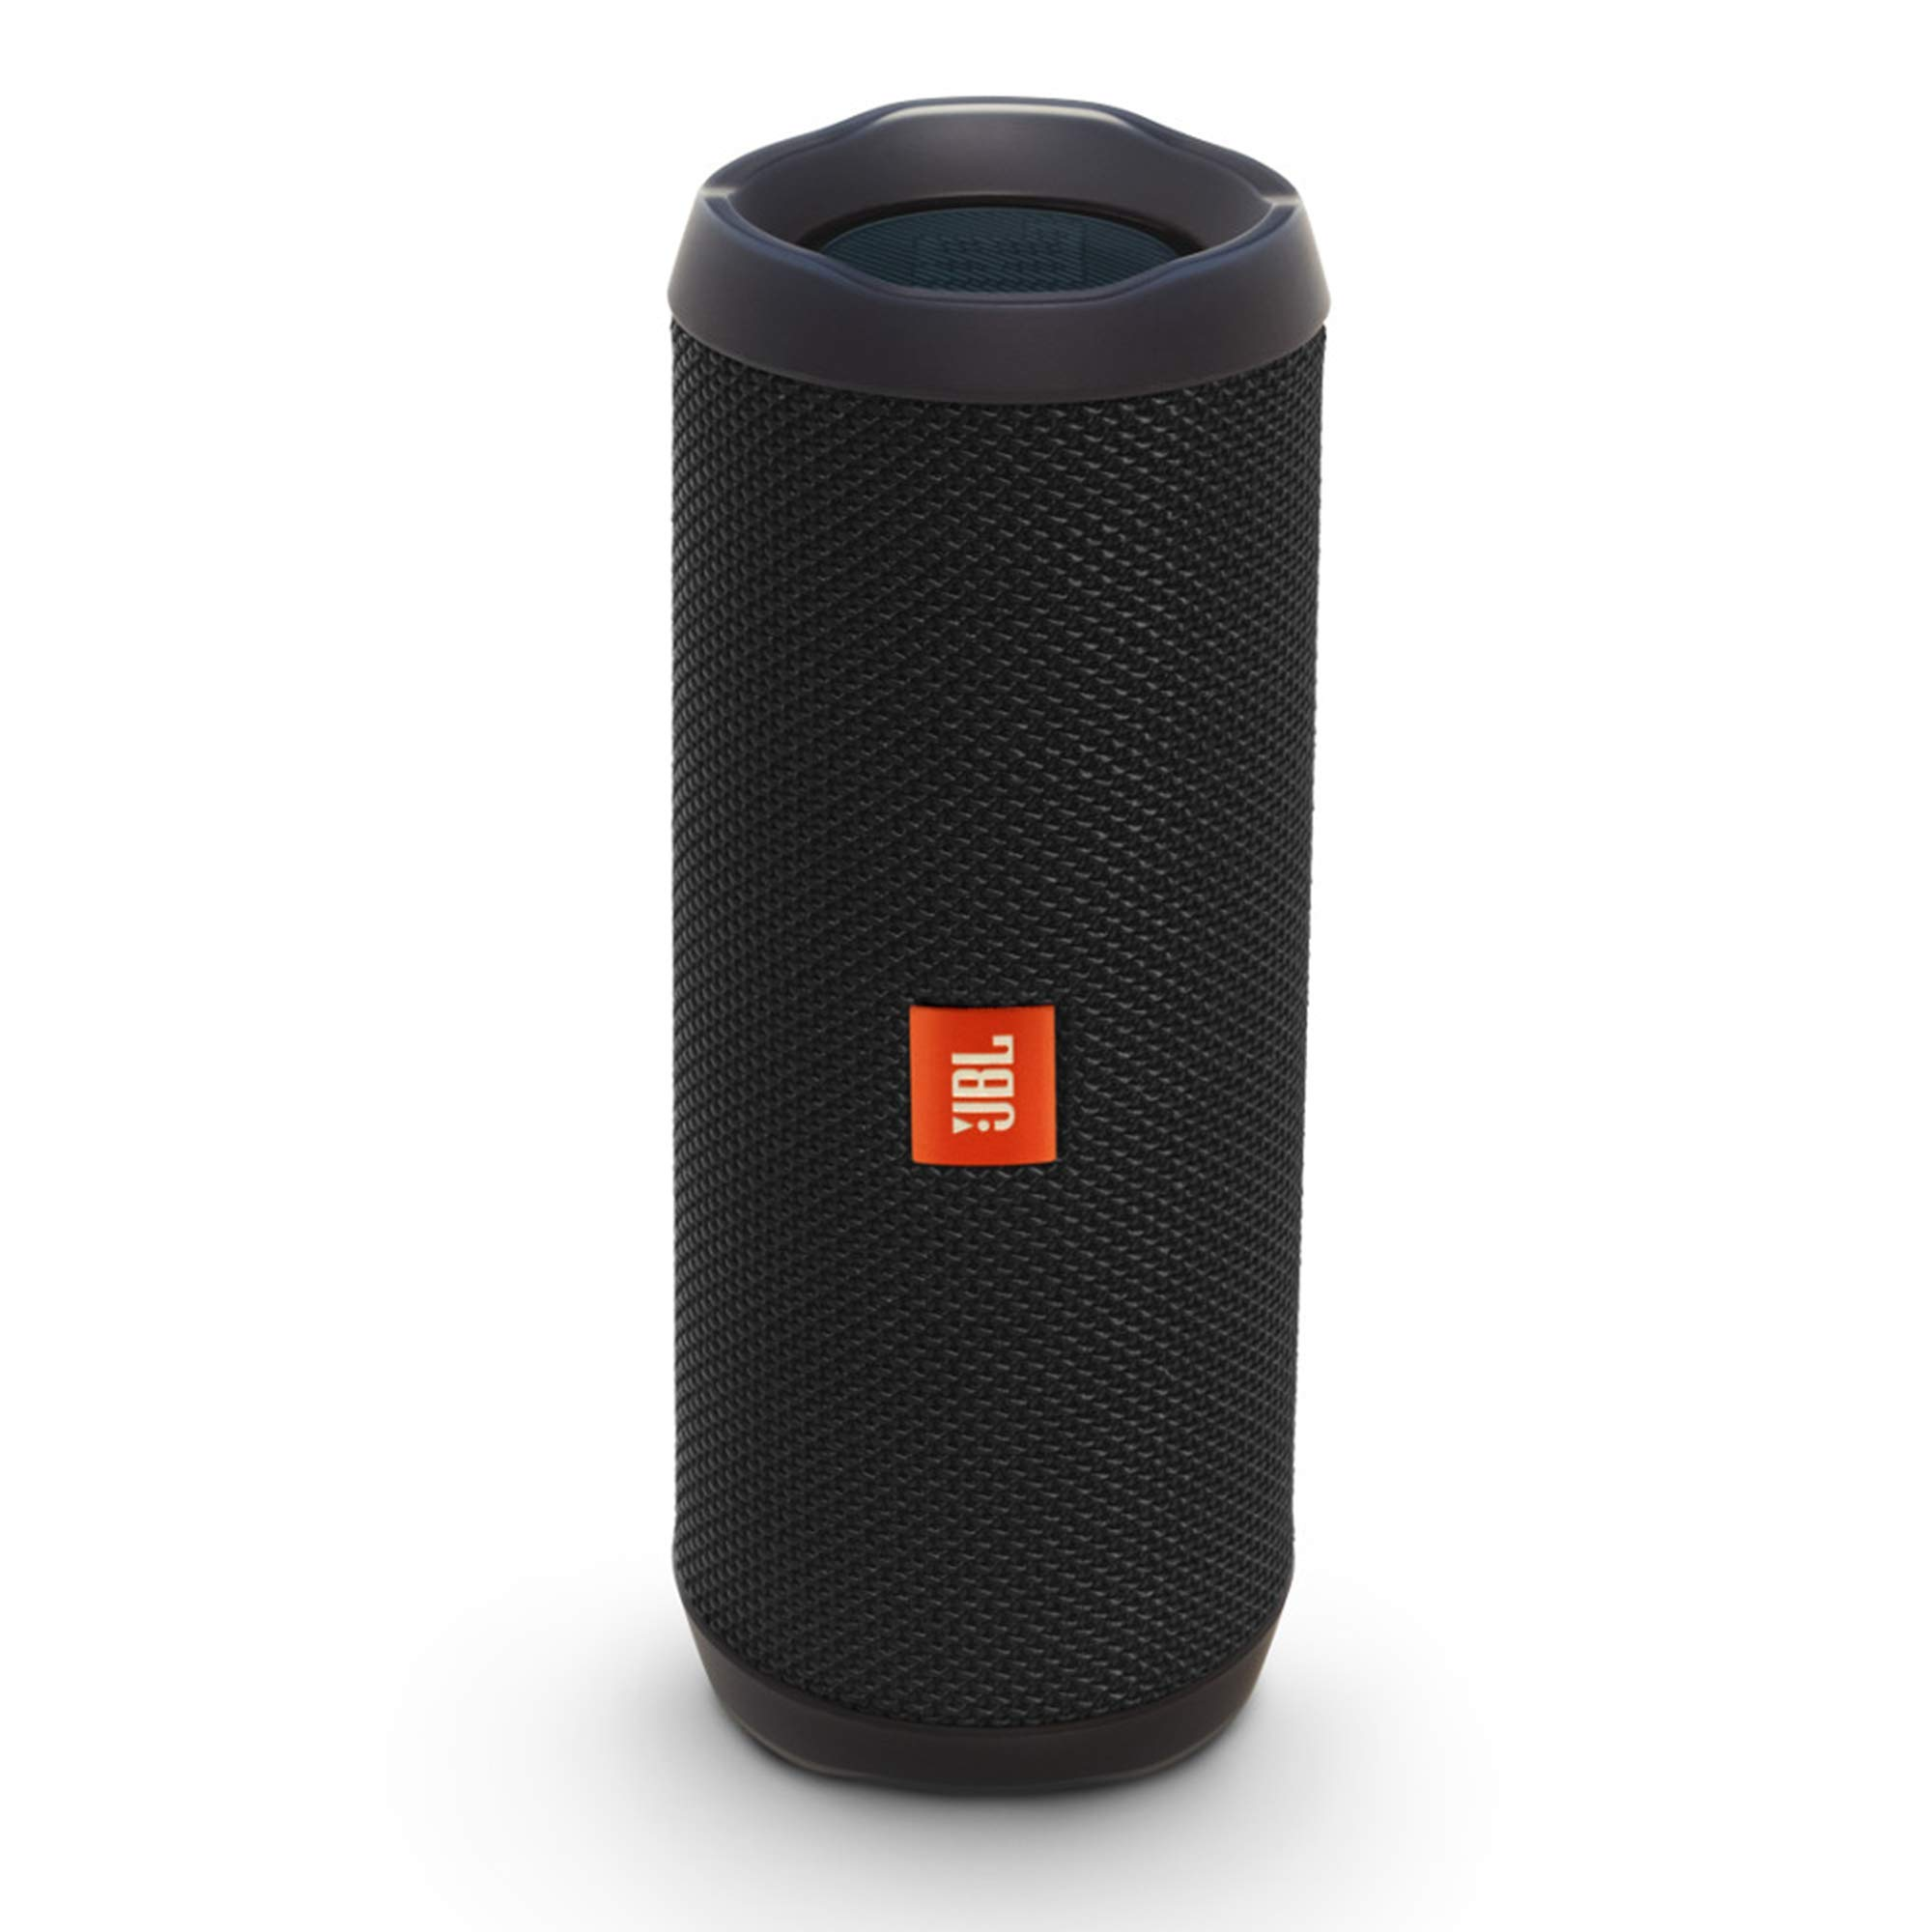 JBL 플립 4 포터블 블루투스 스피커 8종 JBL Flip 4 Waterproof Portable Bluetooth Speaker